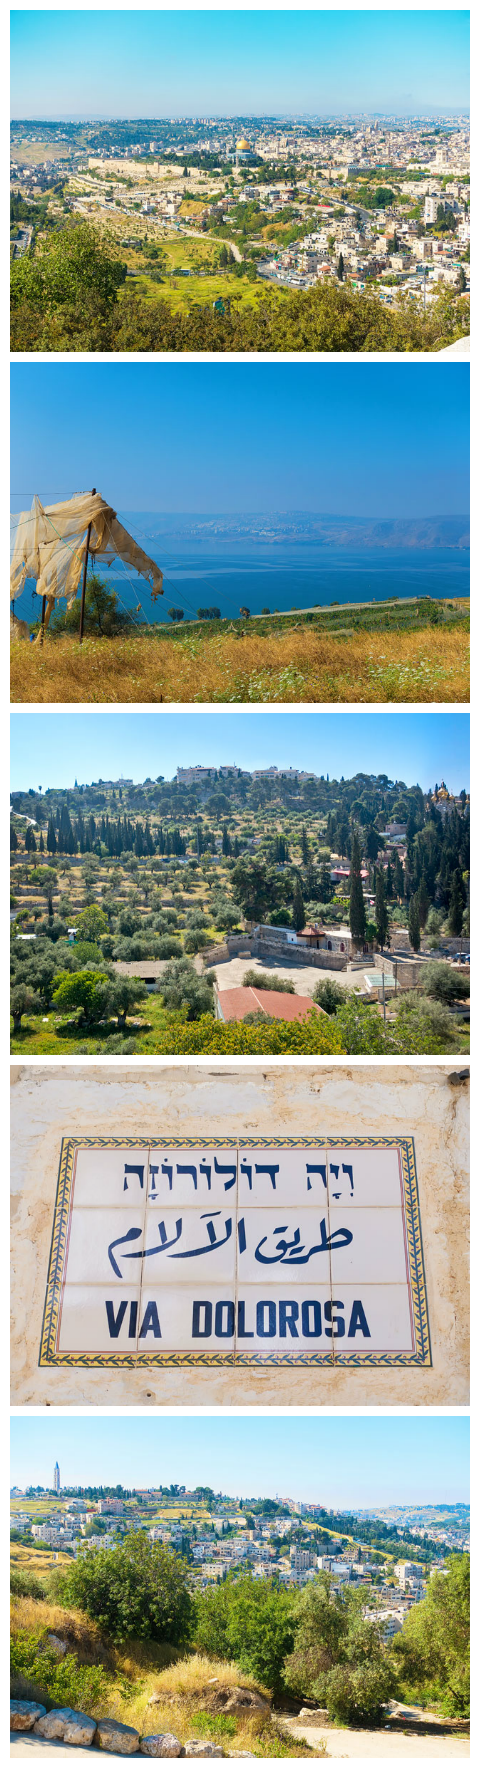 ISRAEL! A list of the MUST-SEE most famous historical sites in Israel, including: Caesarea, where King Herod lived in Biblical times, The Hanging Gardens at Haifa, The Sea of Galilee (where Jesus walked on water) and Masada. The best tips for planning a trip to Israel!